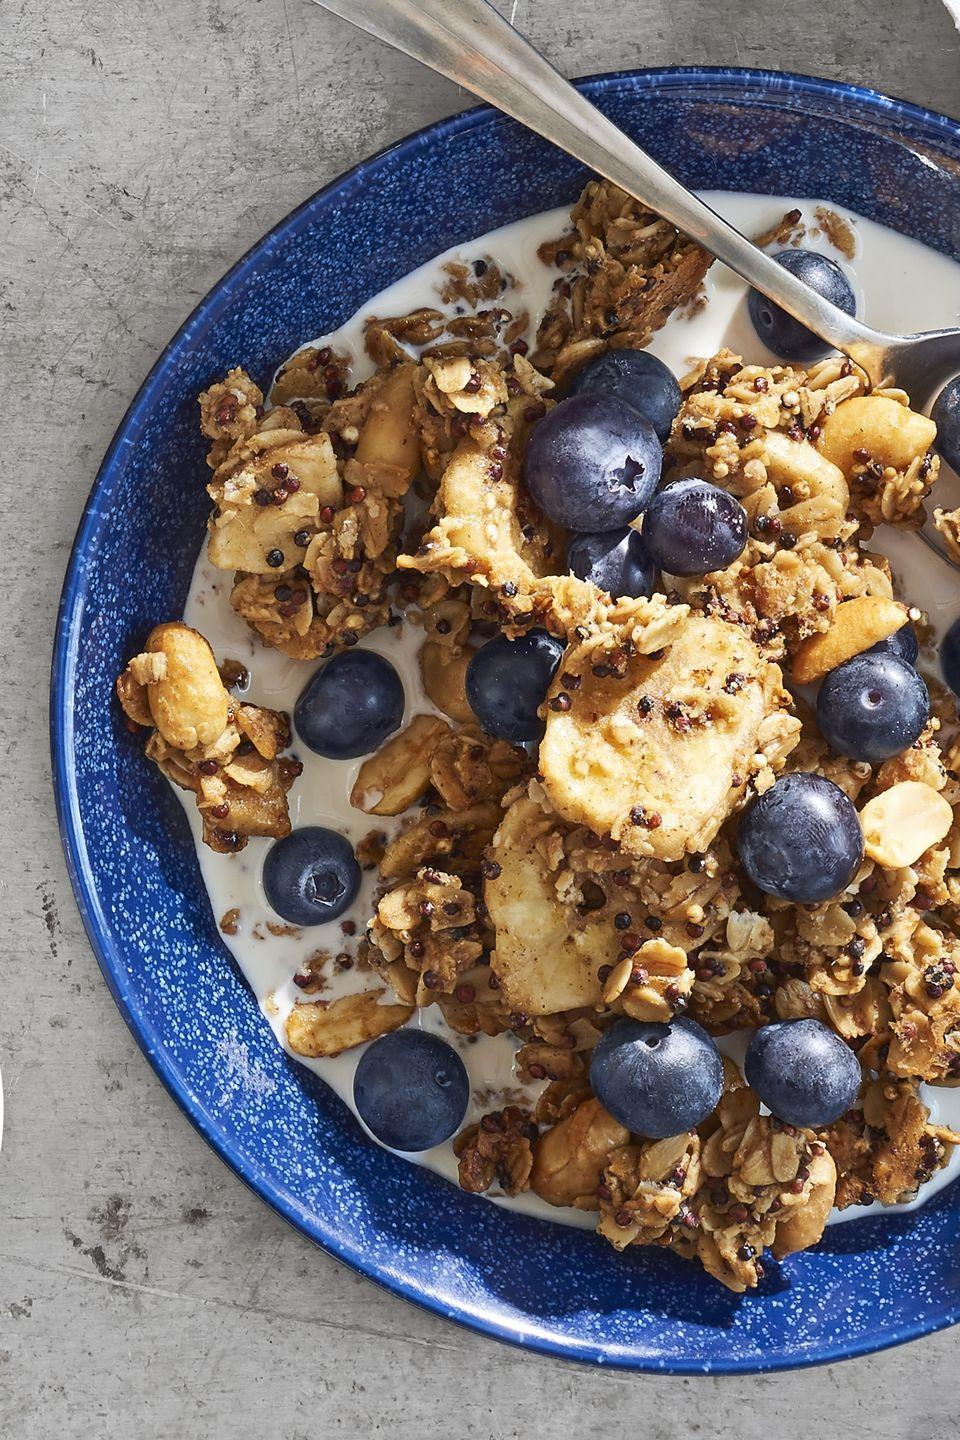 """<p>Serve with vanilla almond milk for the ultimate flavor experience.</p><p><strong><a href=""""https://www.countryliving.com/food-drinks/recipes/a41654/peanut-butter-banana-bread-granola-recipe/"""" rel=""""nofollow noopener"""" target=""""_blank"""" data-ylk=""""slk:Get the recipe"""" class=""""link rapid-noclick-resp"""">Get the recipe</a>.</strong><br></p>"""